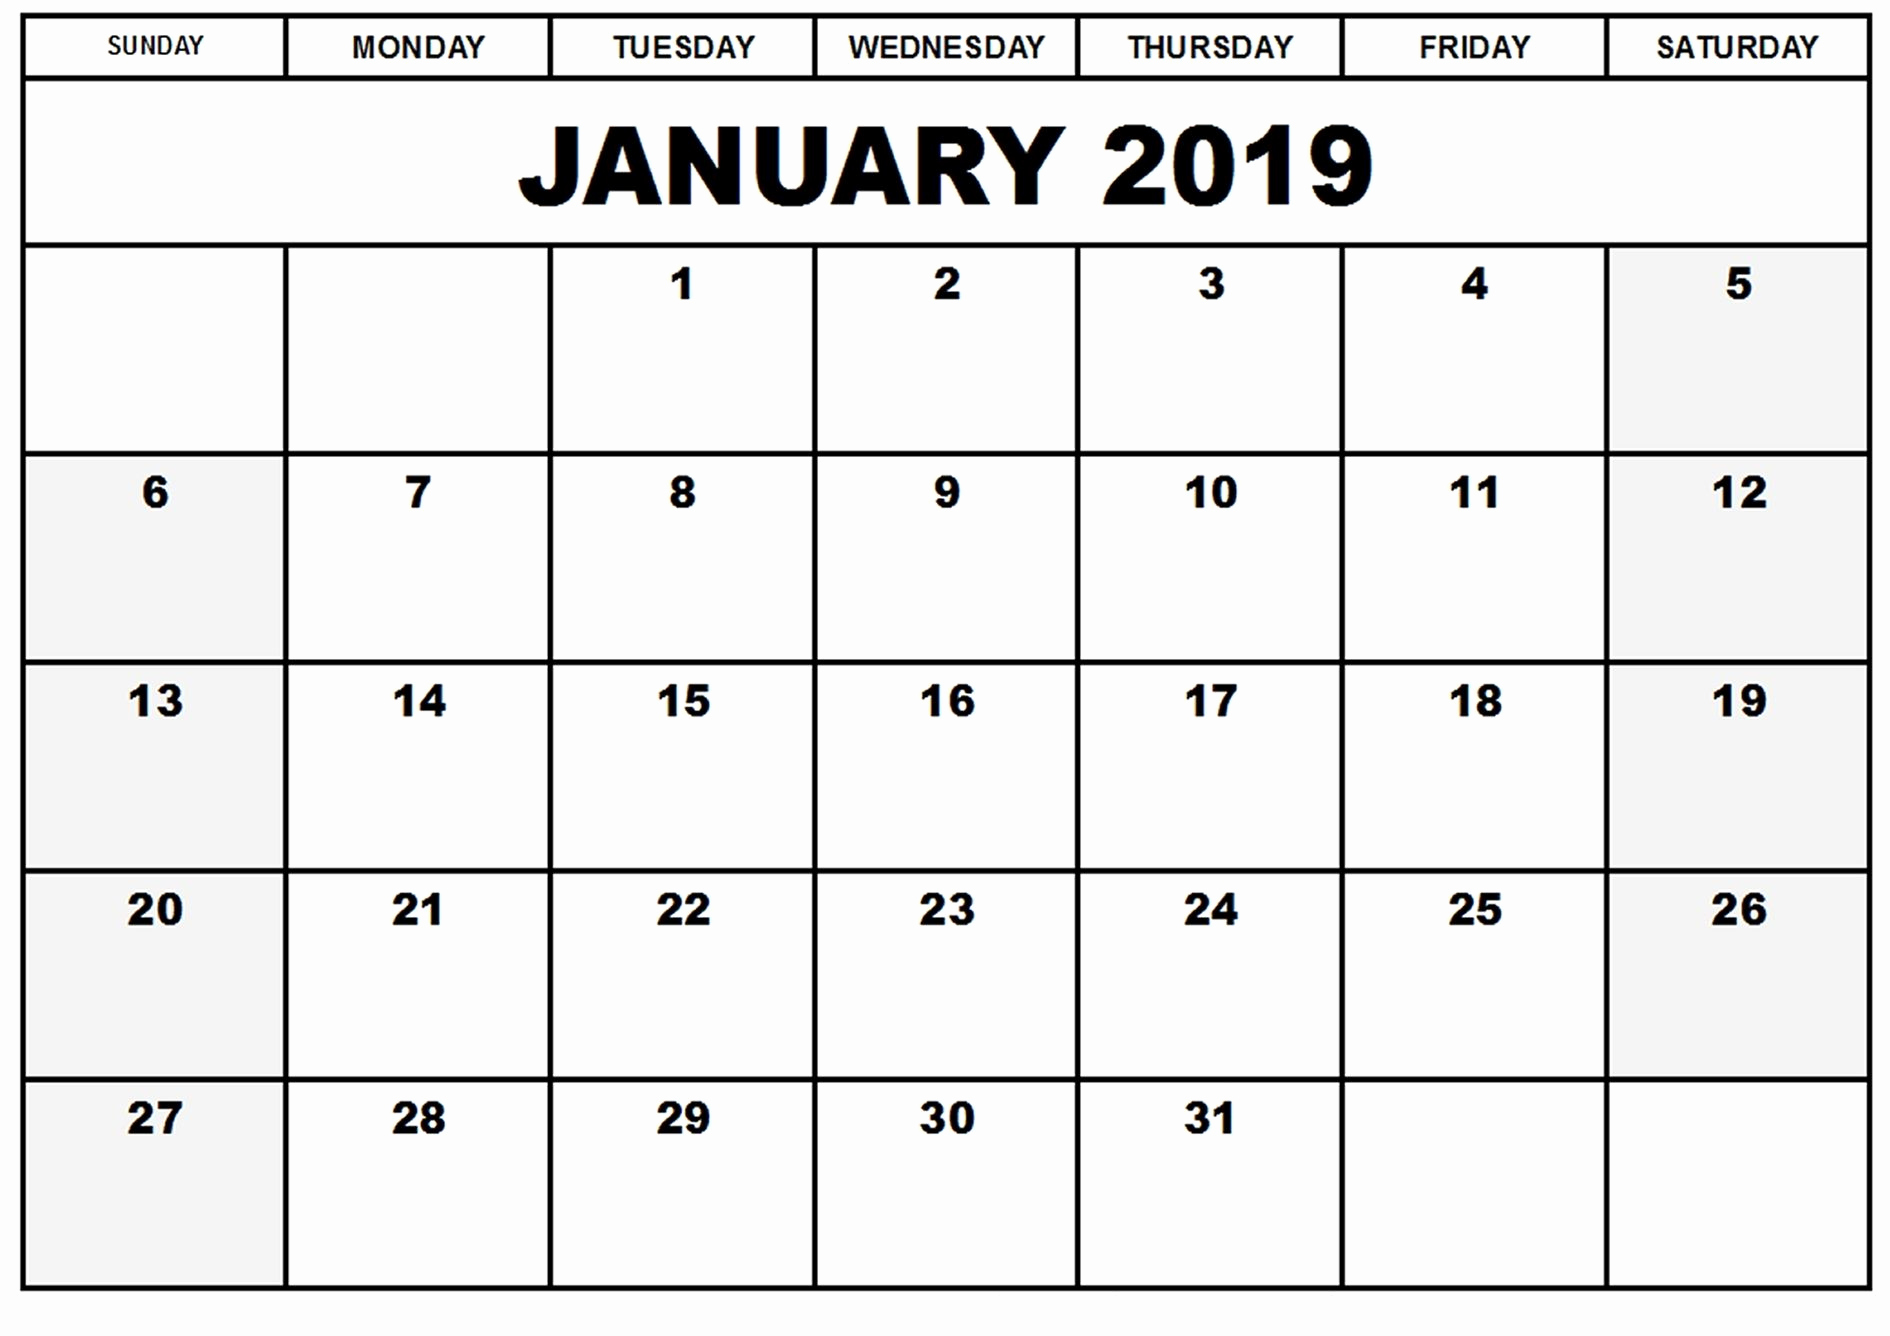 2019 Calendar Template Word New January 2019 Calendar Word Printable Calendar